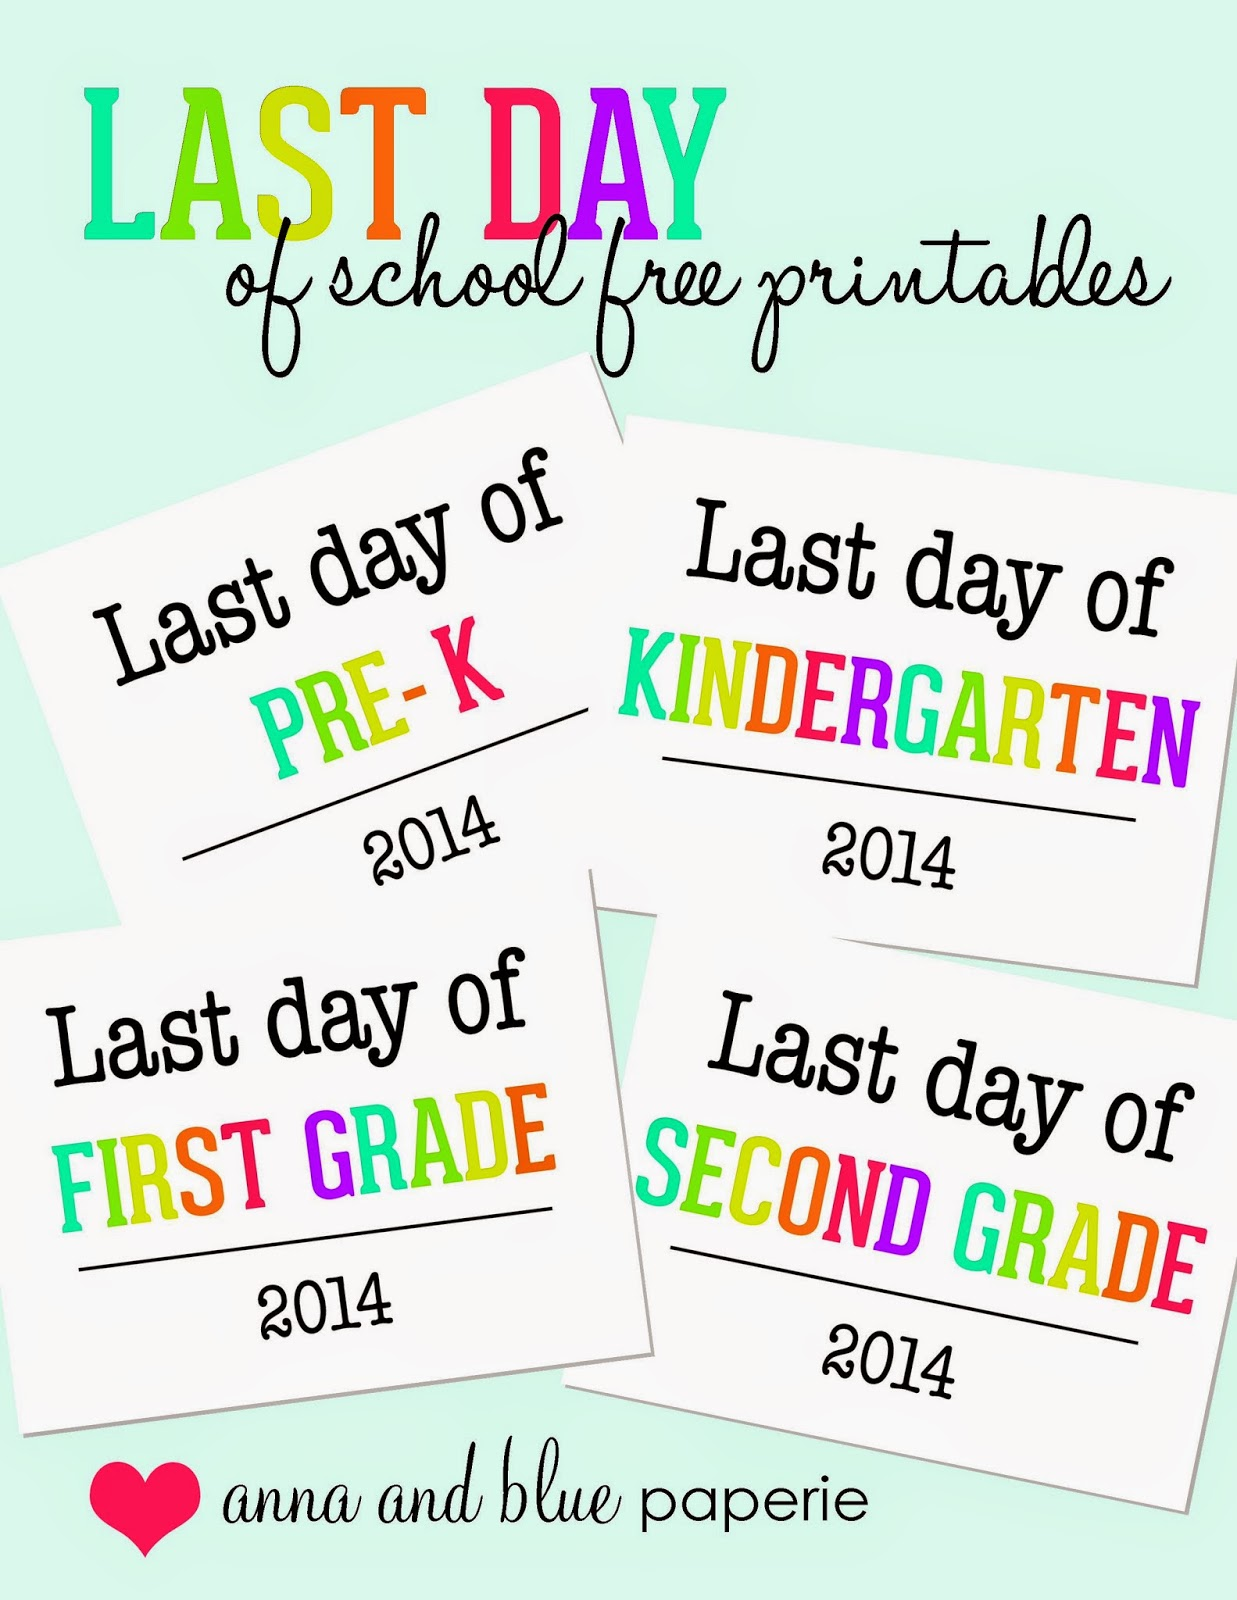 This is a picture of Fan Last Day of Preschool Printable